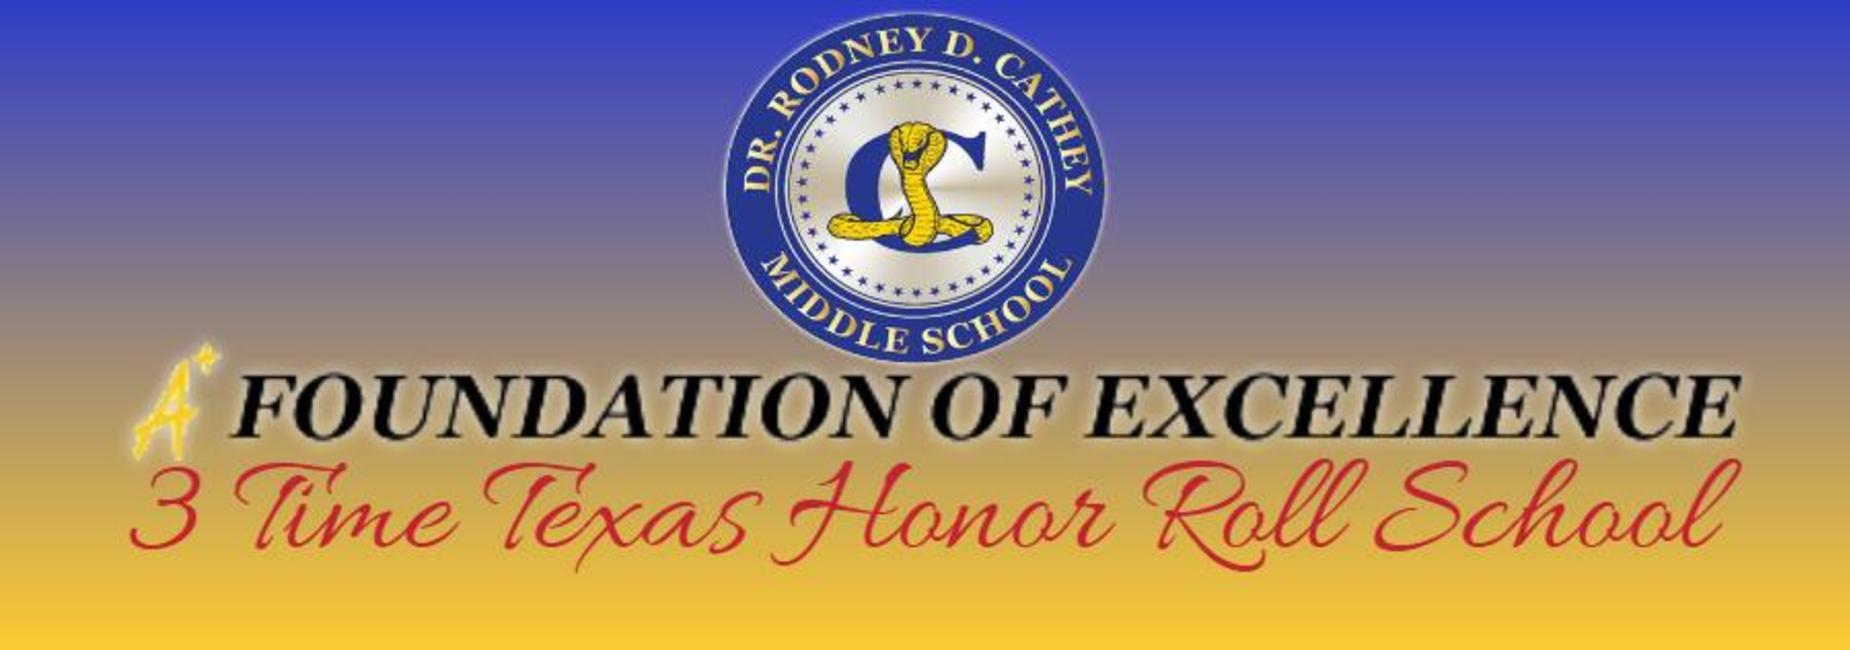 Texas Honor Roll school